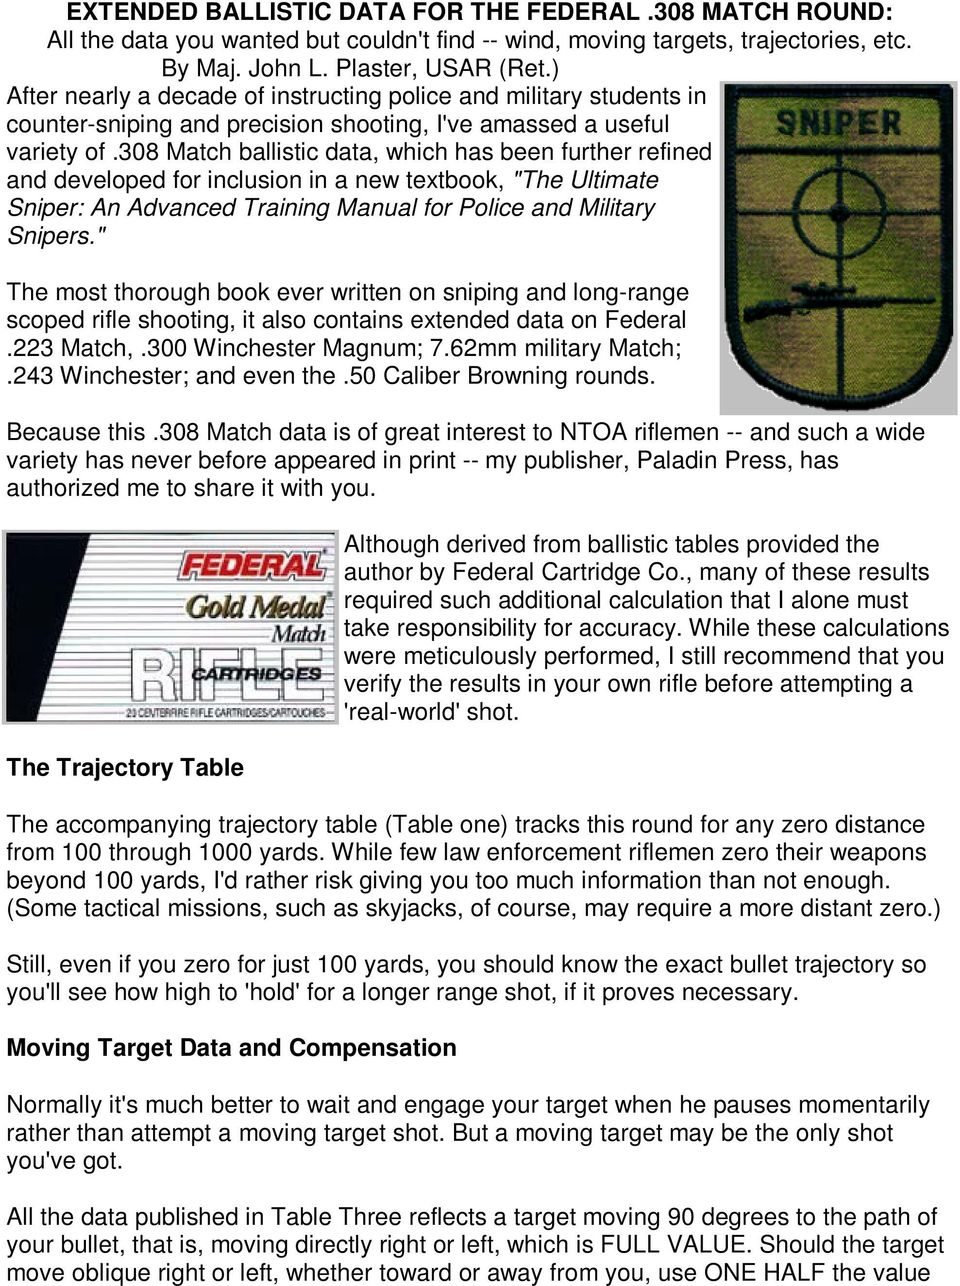 "308 Match ballistic data, which has been further refined and developed for inclusion in a new textbook, ""The Ultimate Sniper: An Advanced Training Manual for Police and Military Snipers."